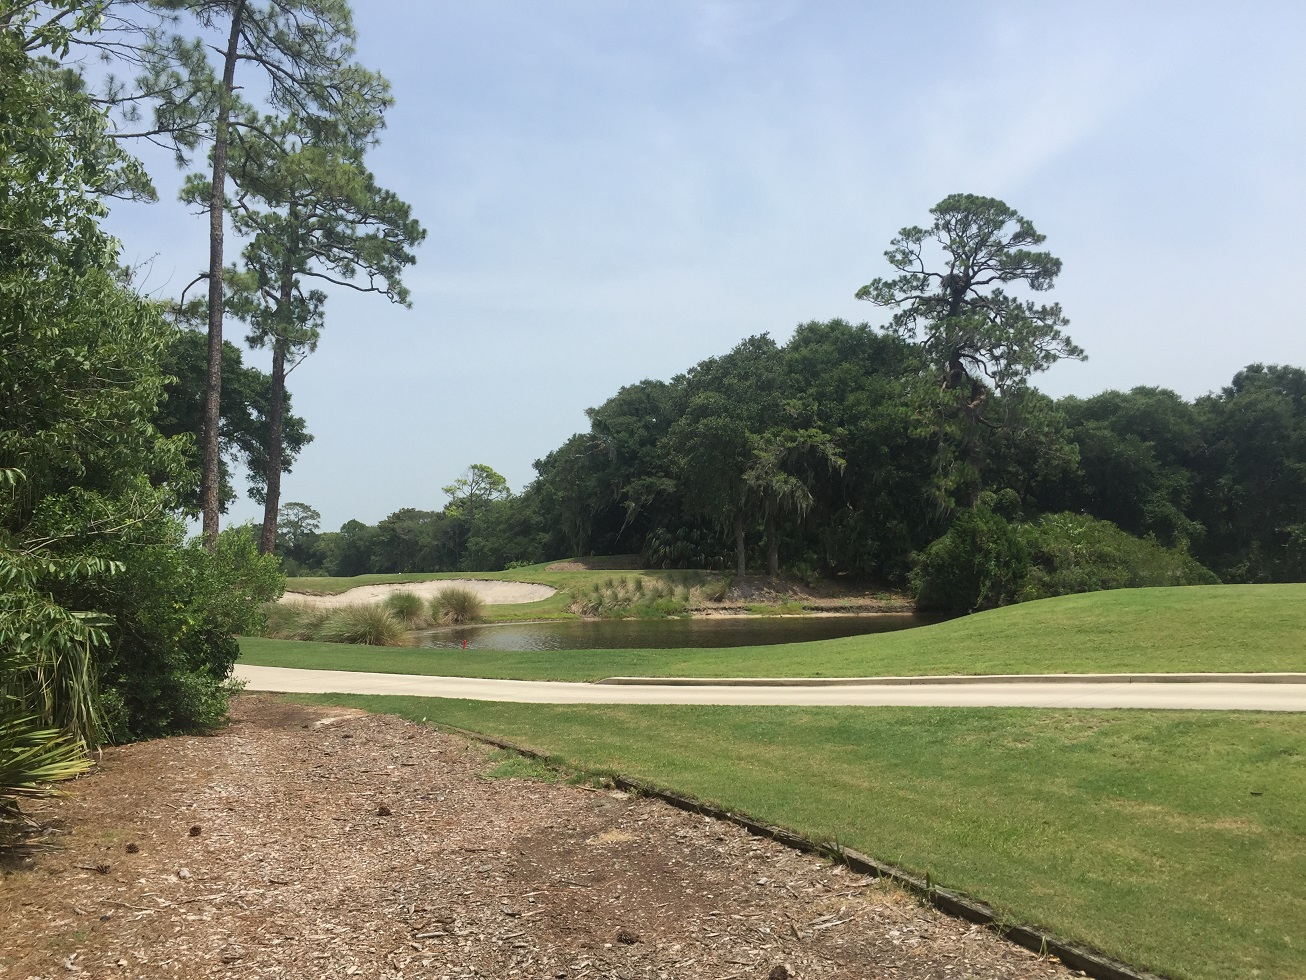 Land for Sale at Nearly Half An Acre with Sweeping Pond ad Golf Court Views Lot 20 Long Point Drive Amelia Island, Florida 32034 United States